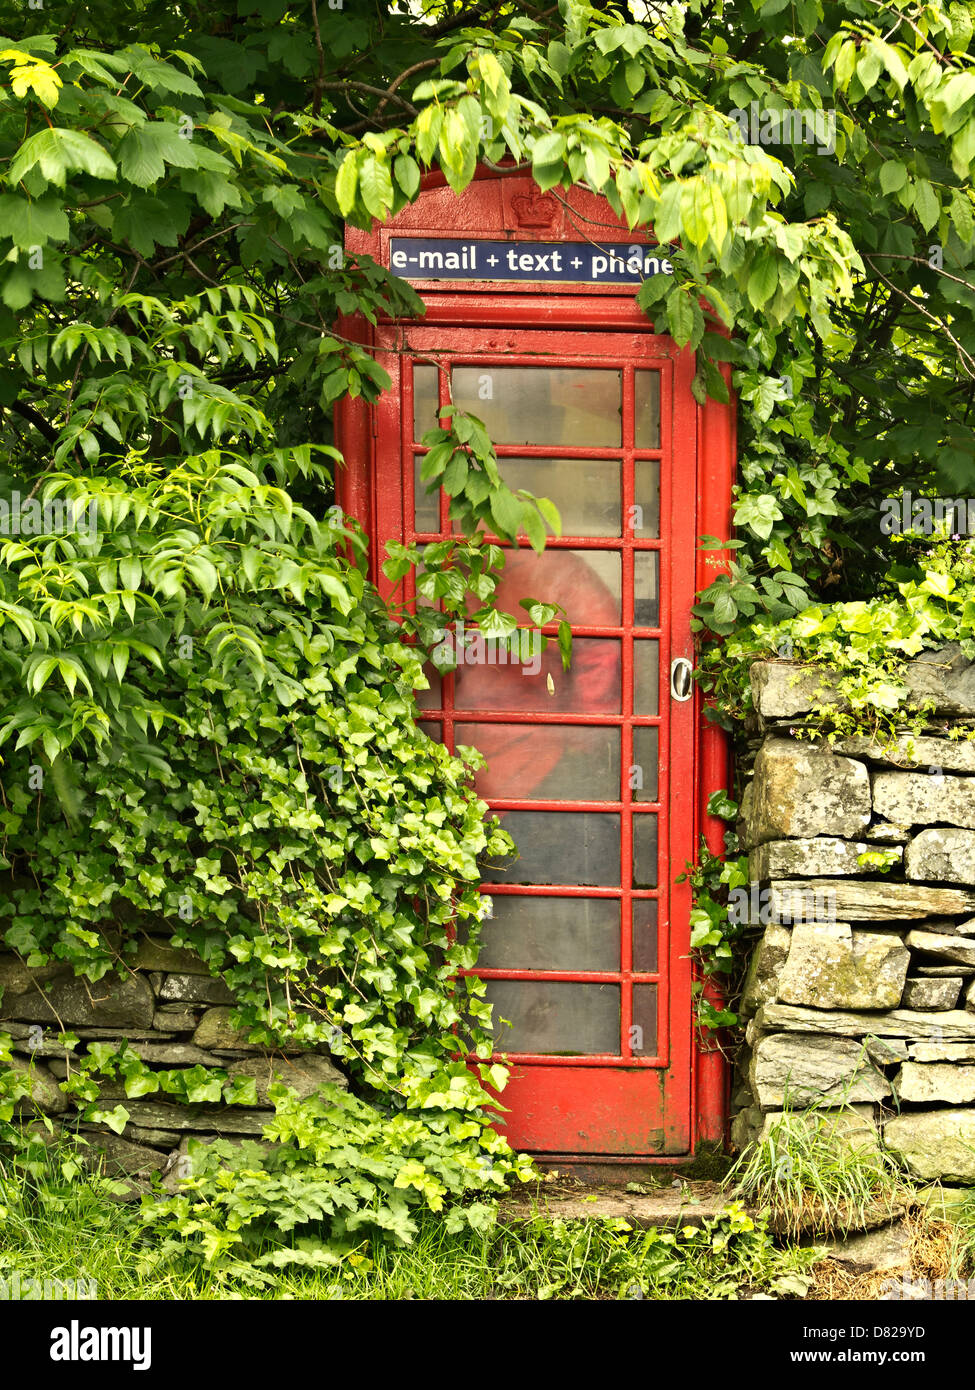 A man making a call within a red telephone box , Stonewaite, Lake District, UK - Stock Image